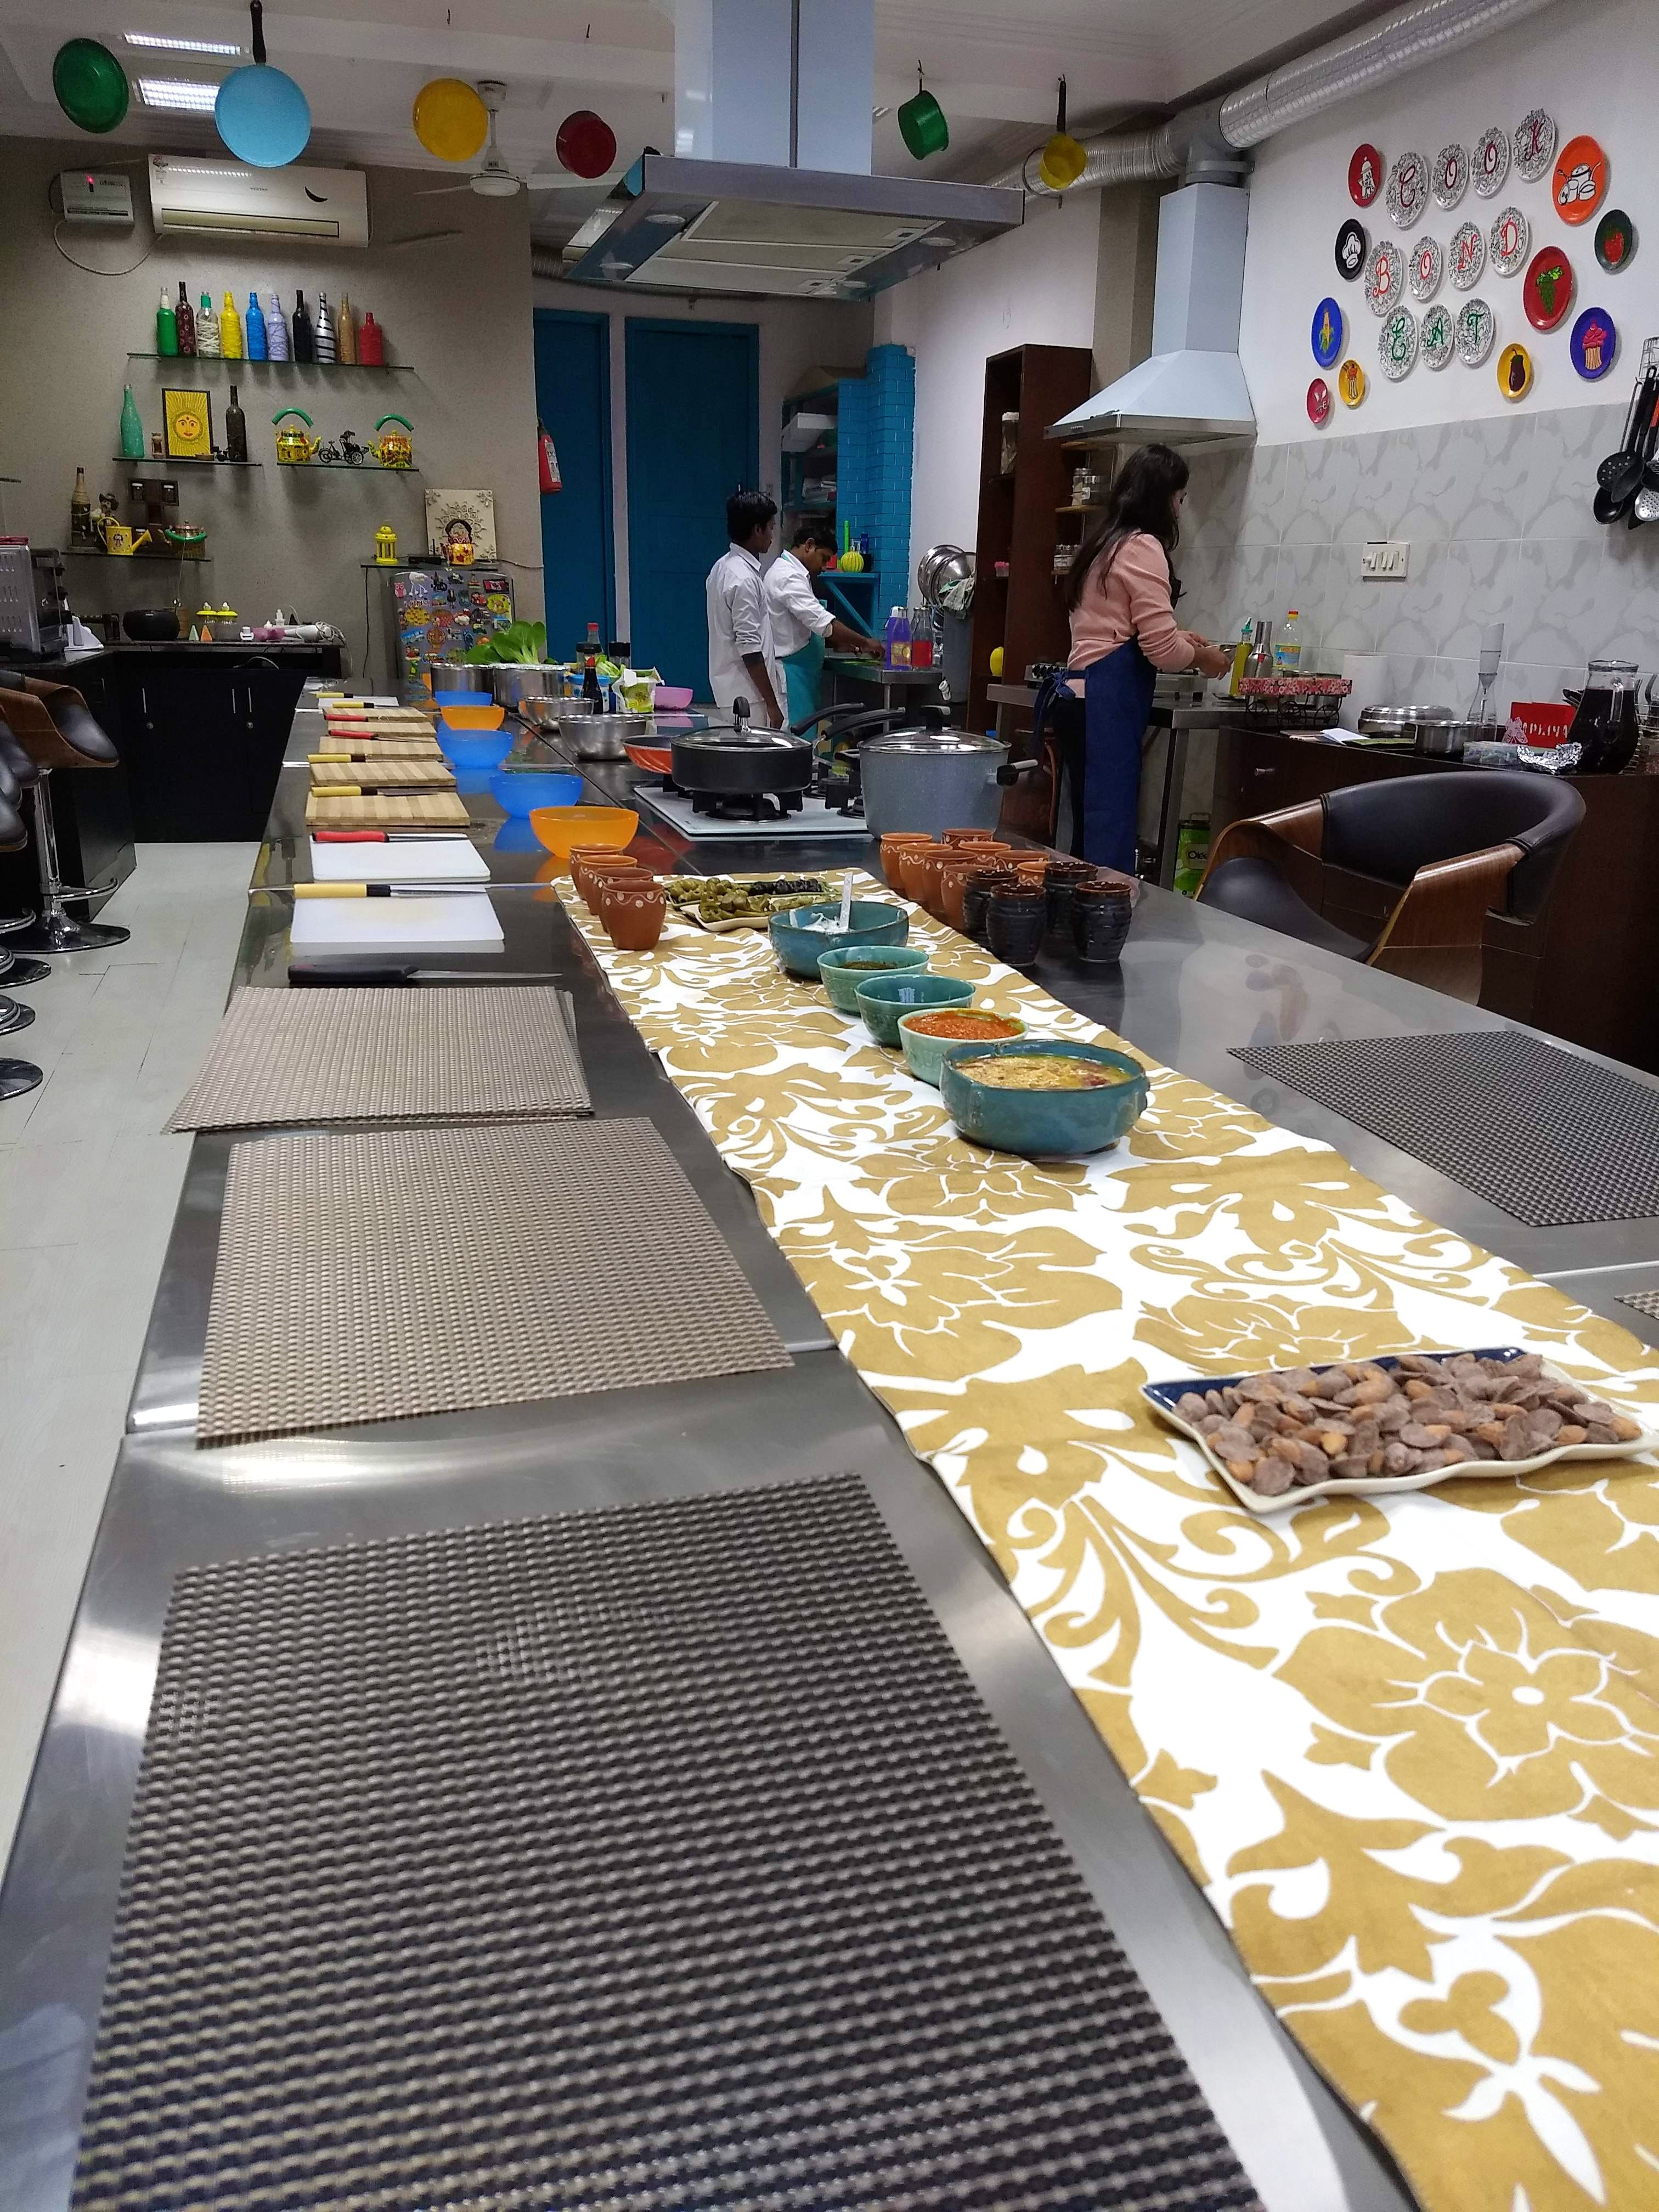 Cook, Bond And Eat With Tastesutra's Experiential Cooking Sessions